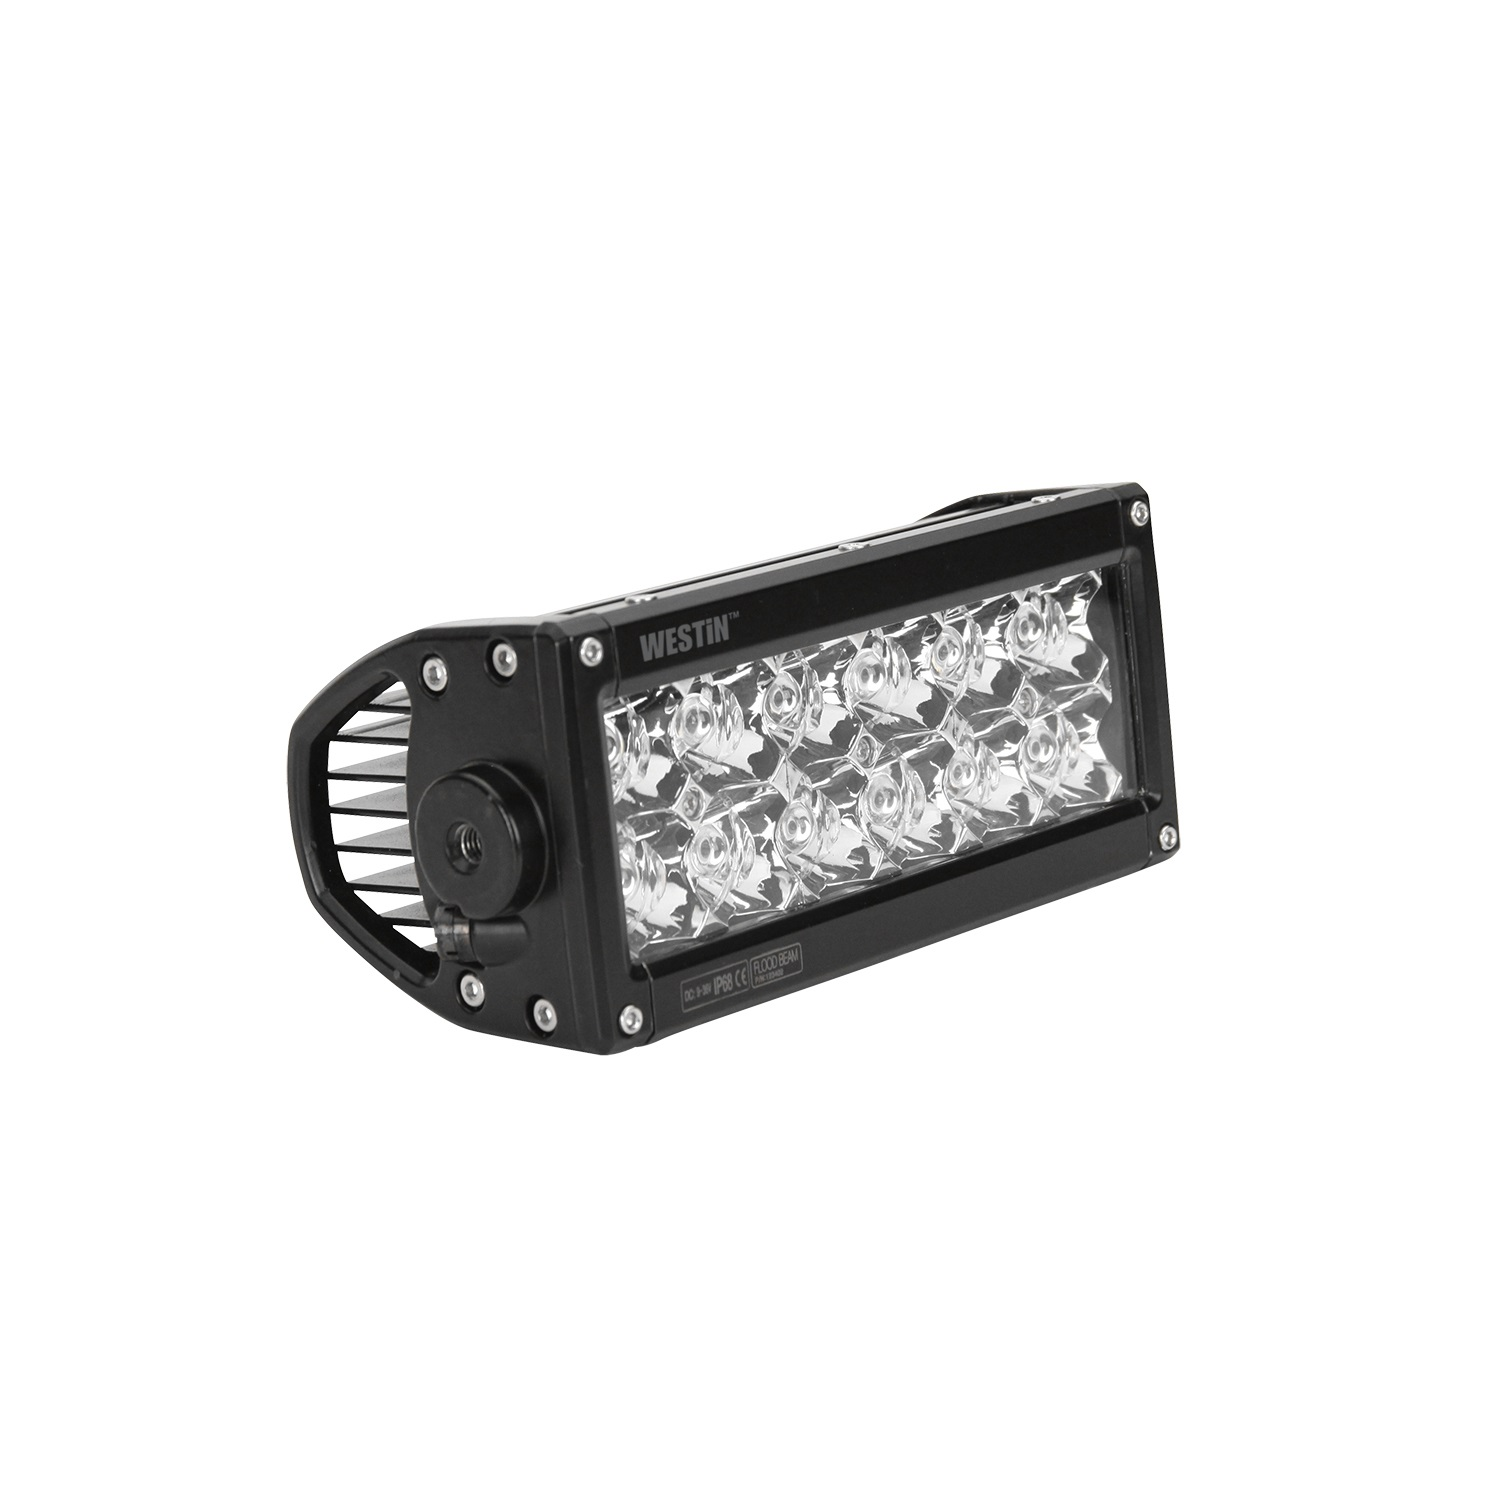 Westin 09-12230-12F Performance2X LED Light Bar